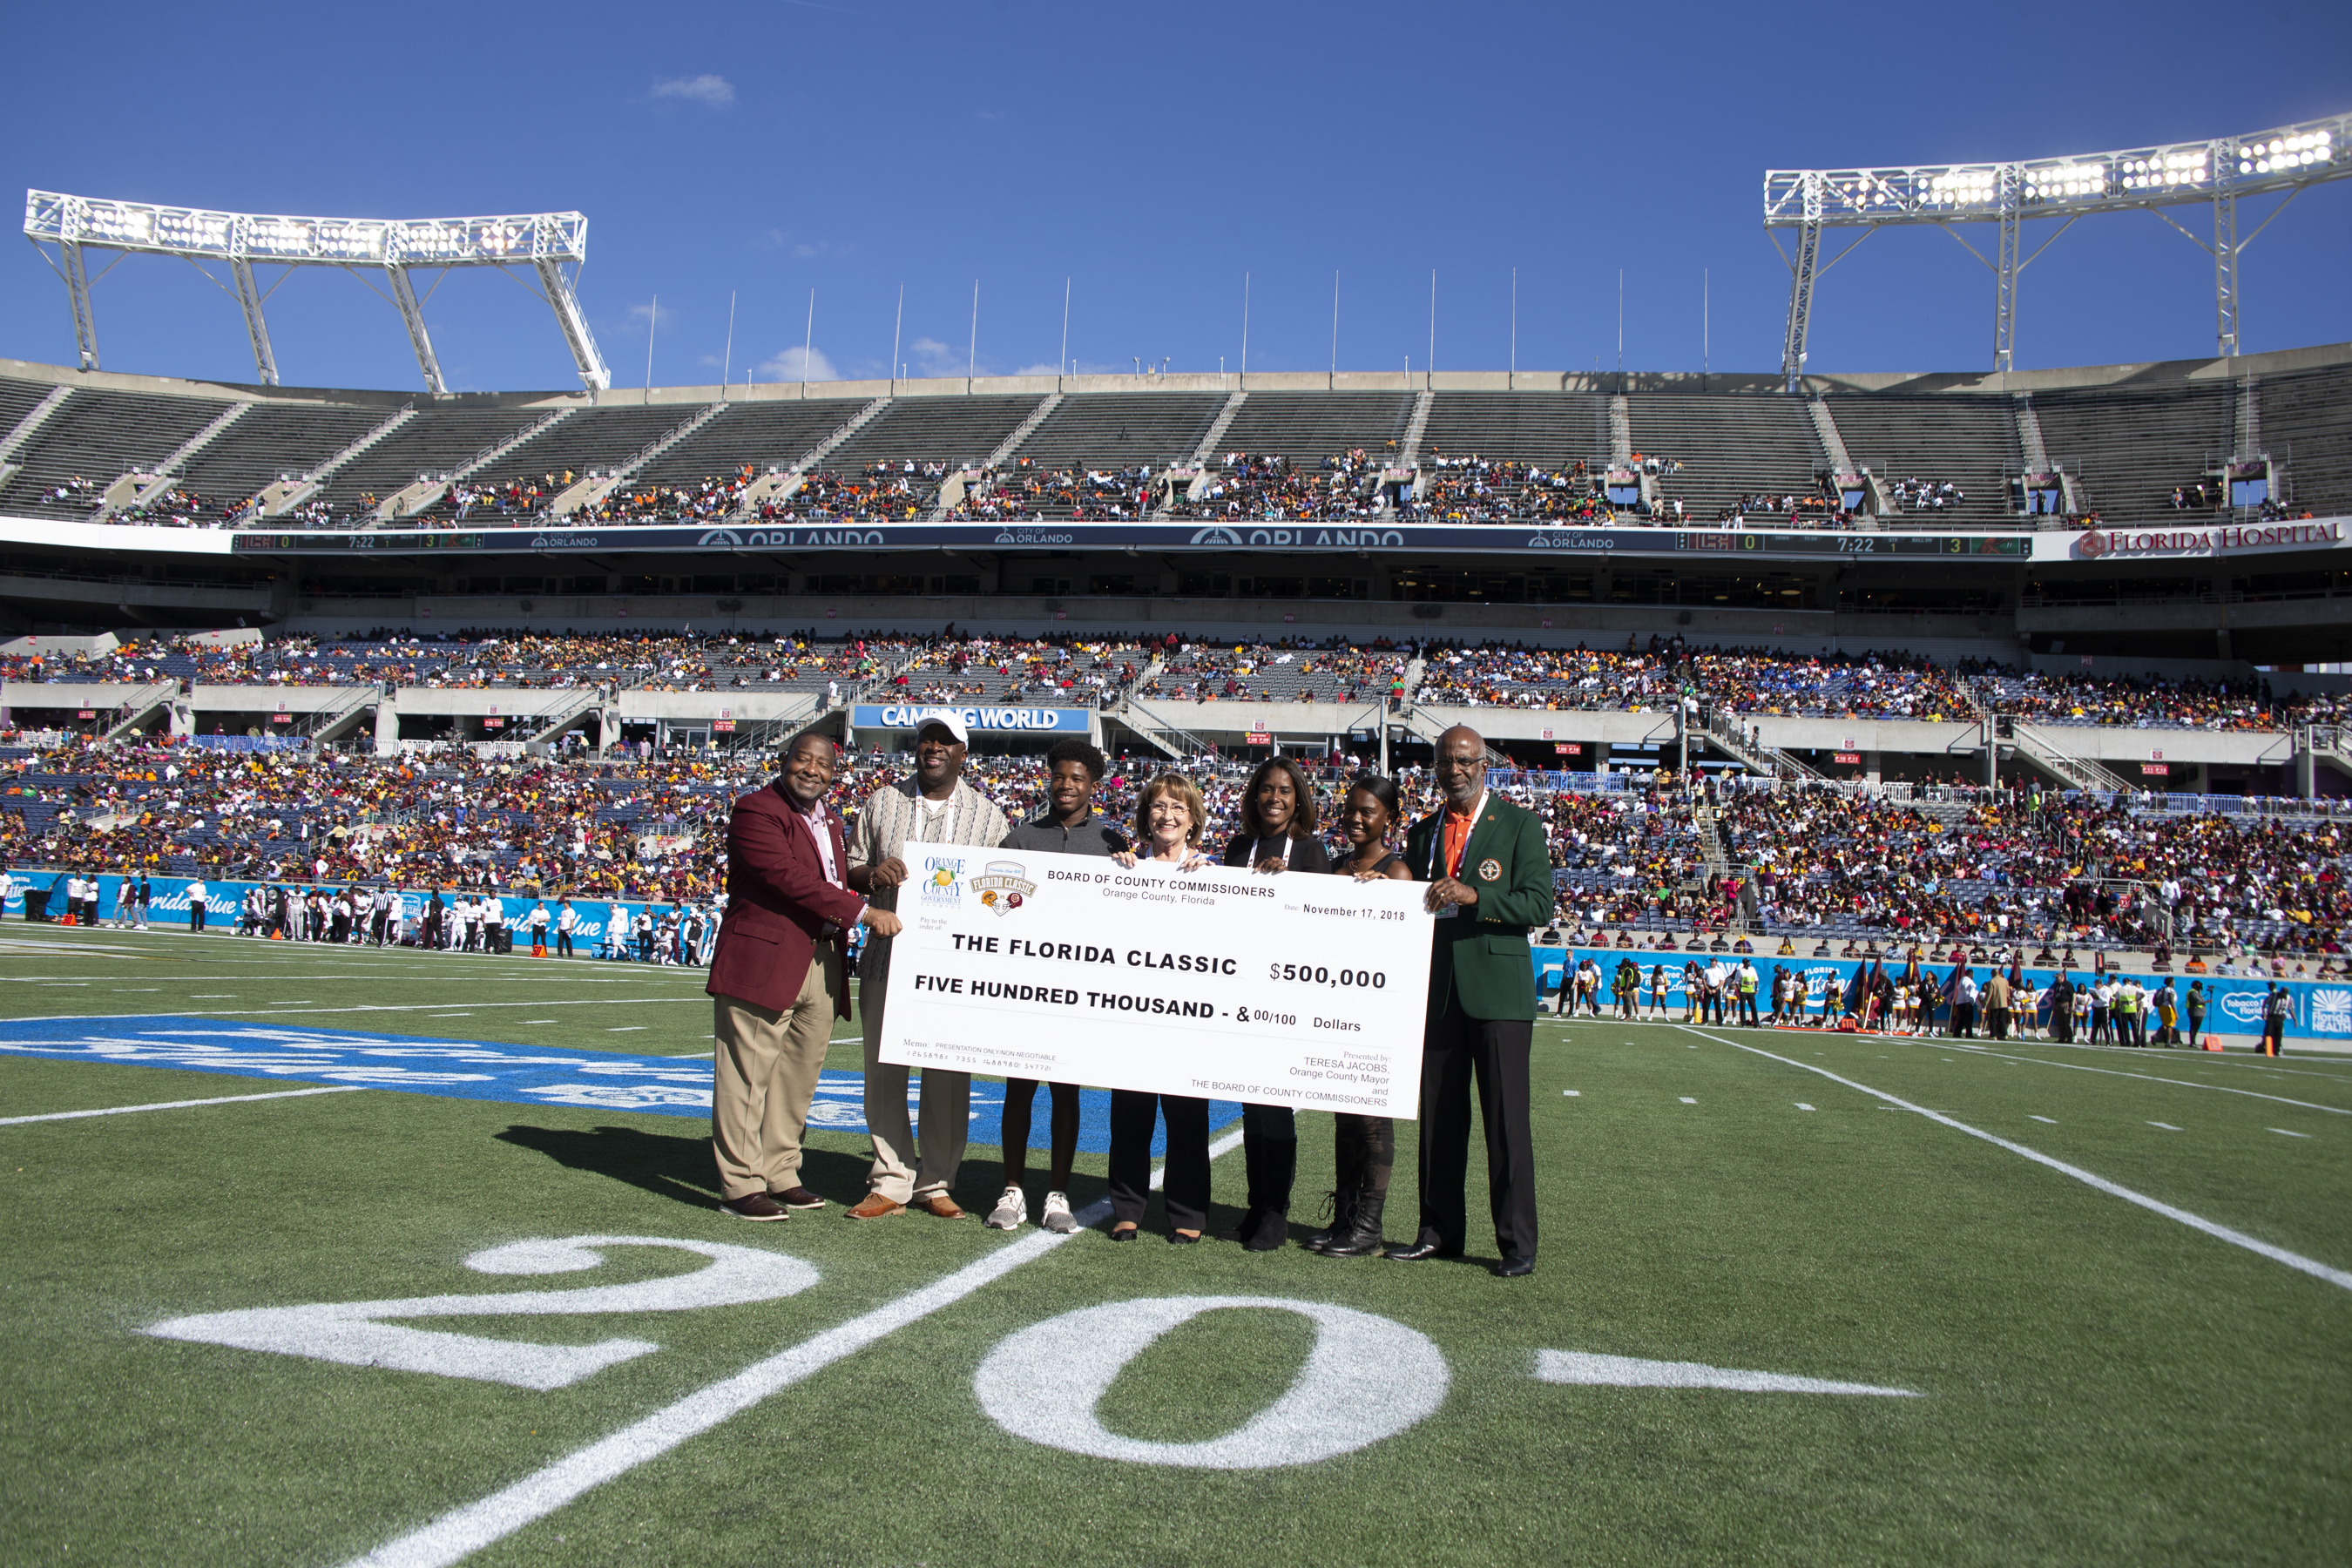 Mayor Jacobs and a small group hold a life-size check in the middle of a football field